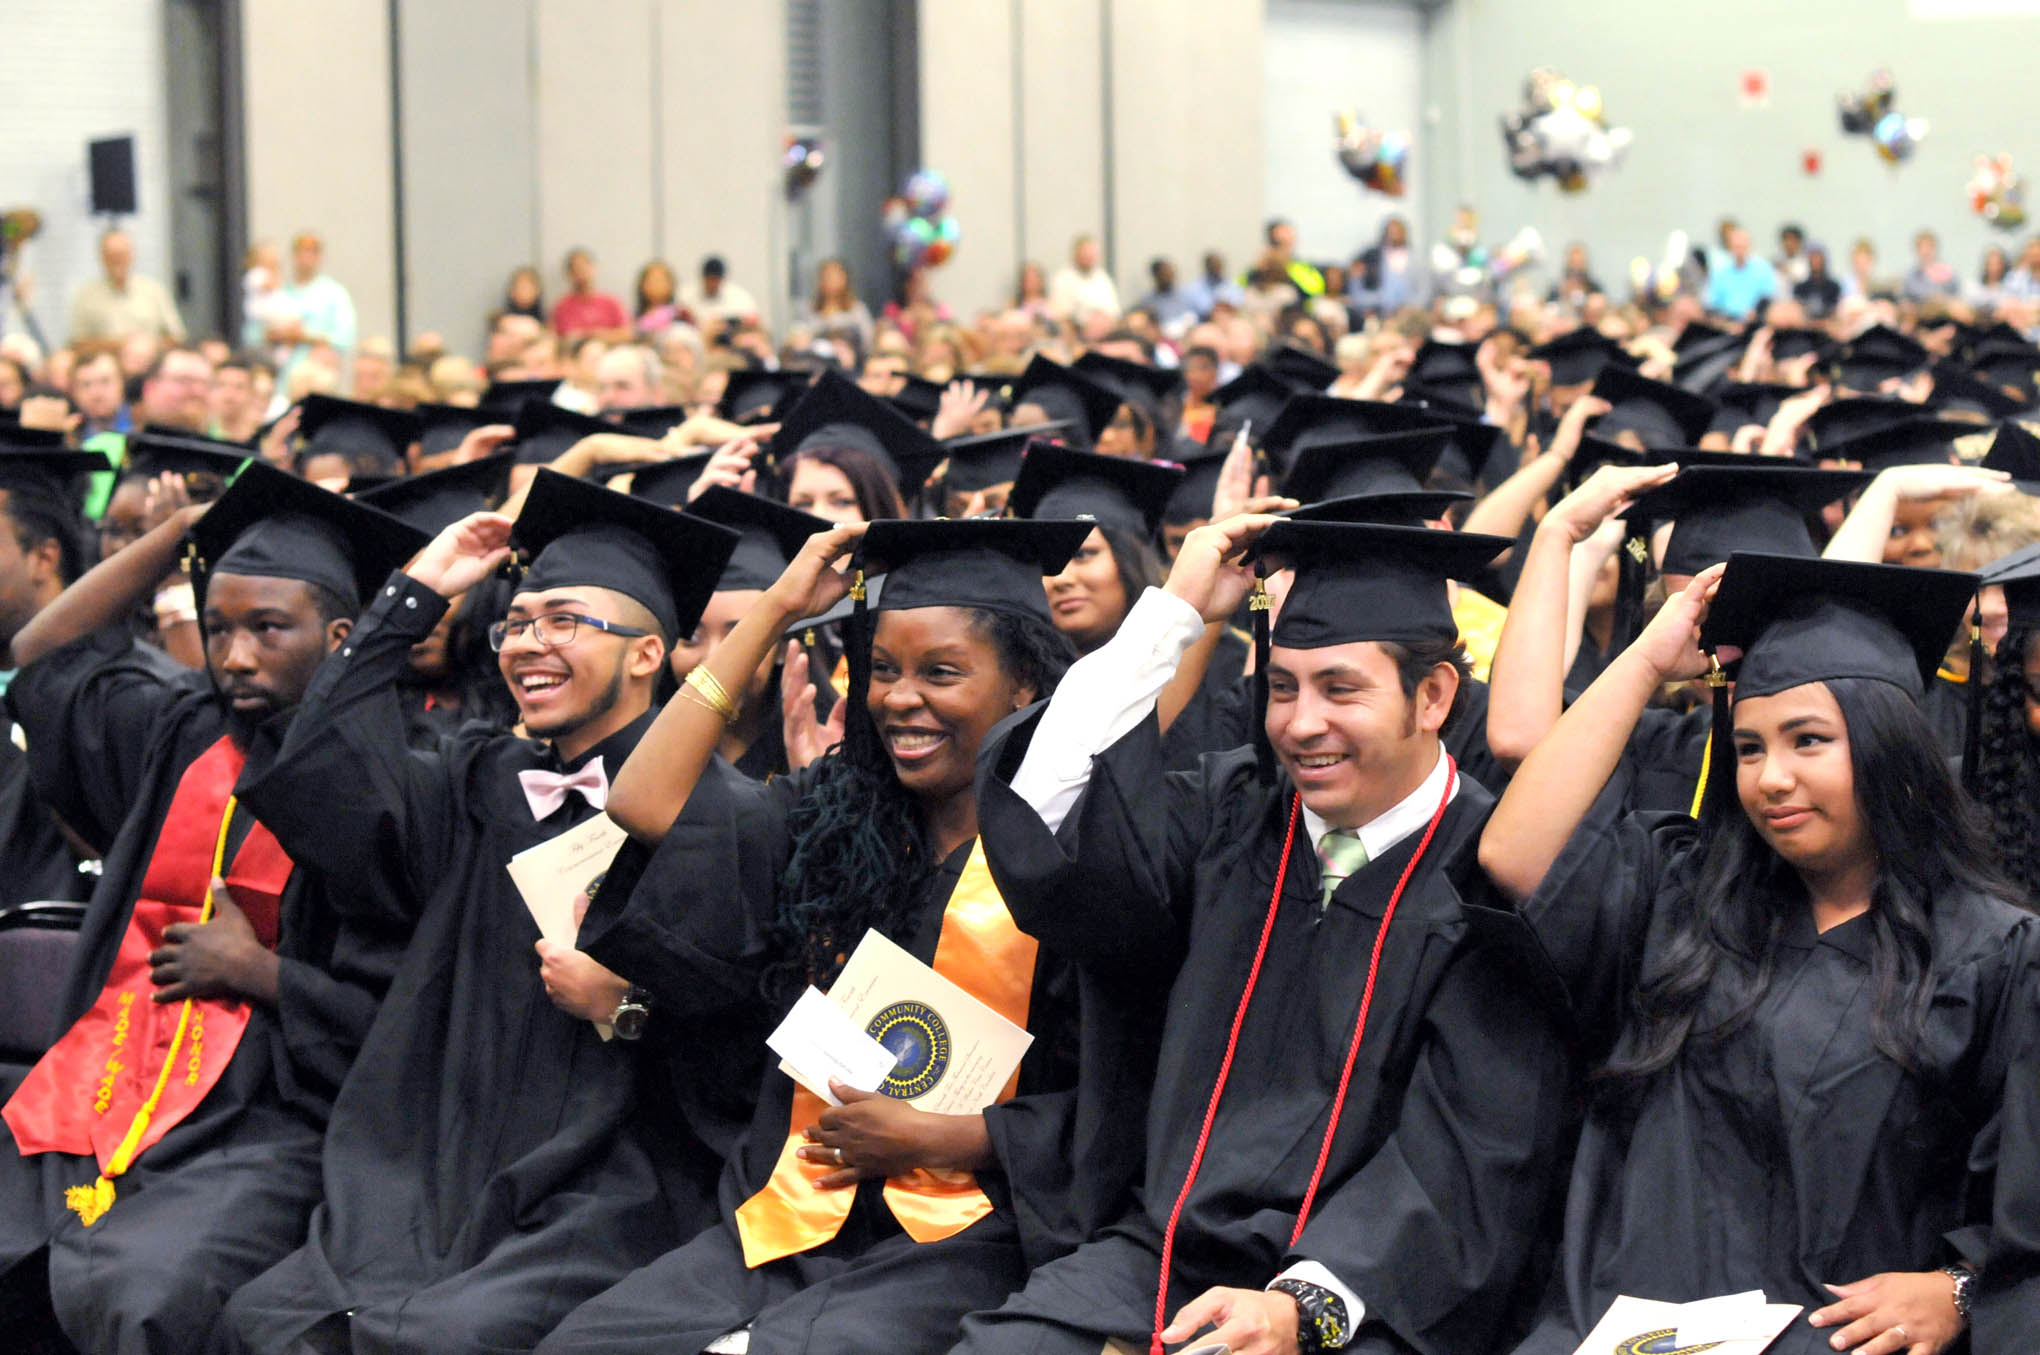 Click to enlarge,  A large audience attended the Central Carolina Community College commencement exercises on May 11 at the Dennis A. Wicker Civic Center in Sanford.